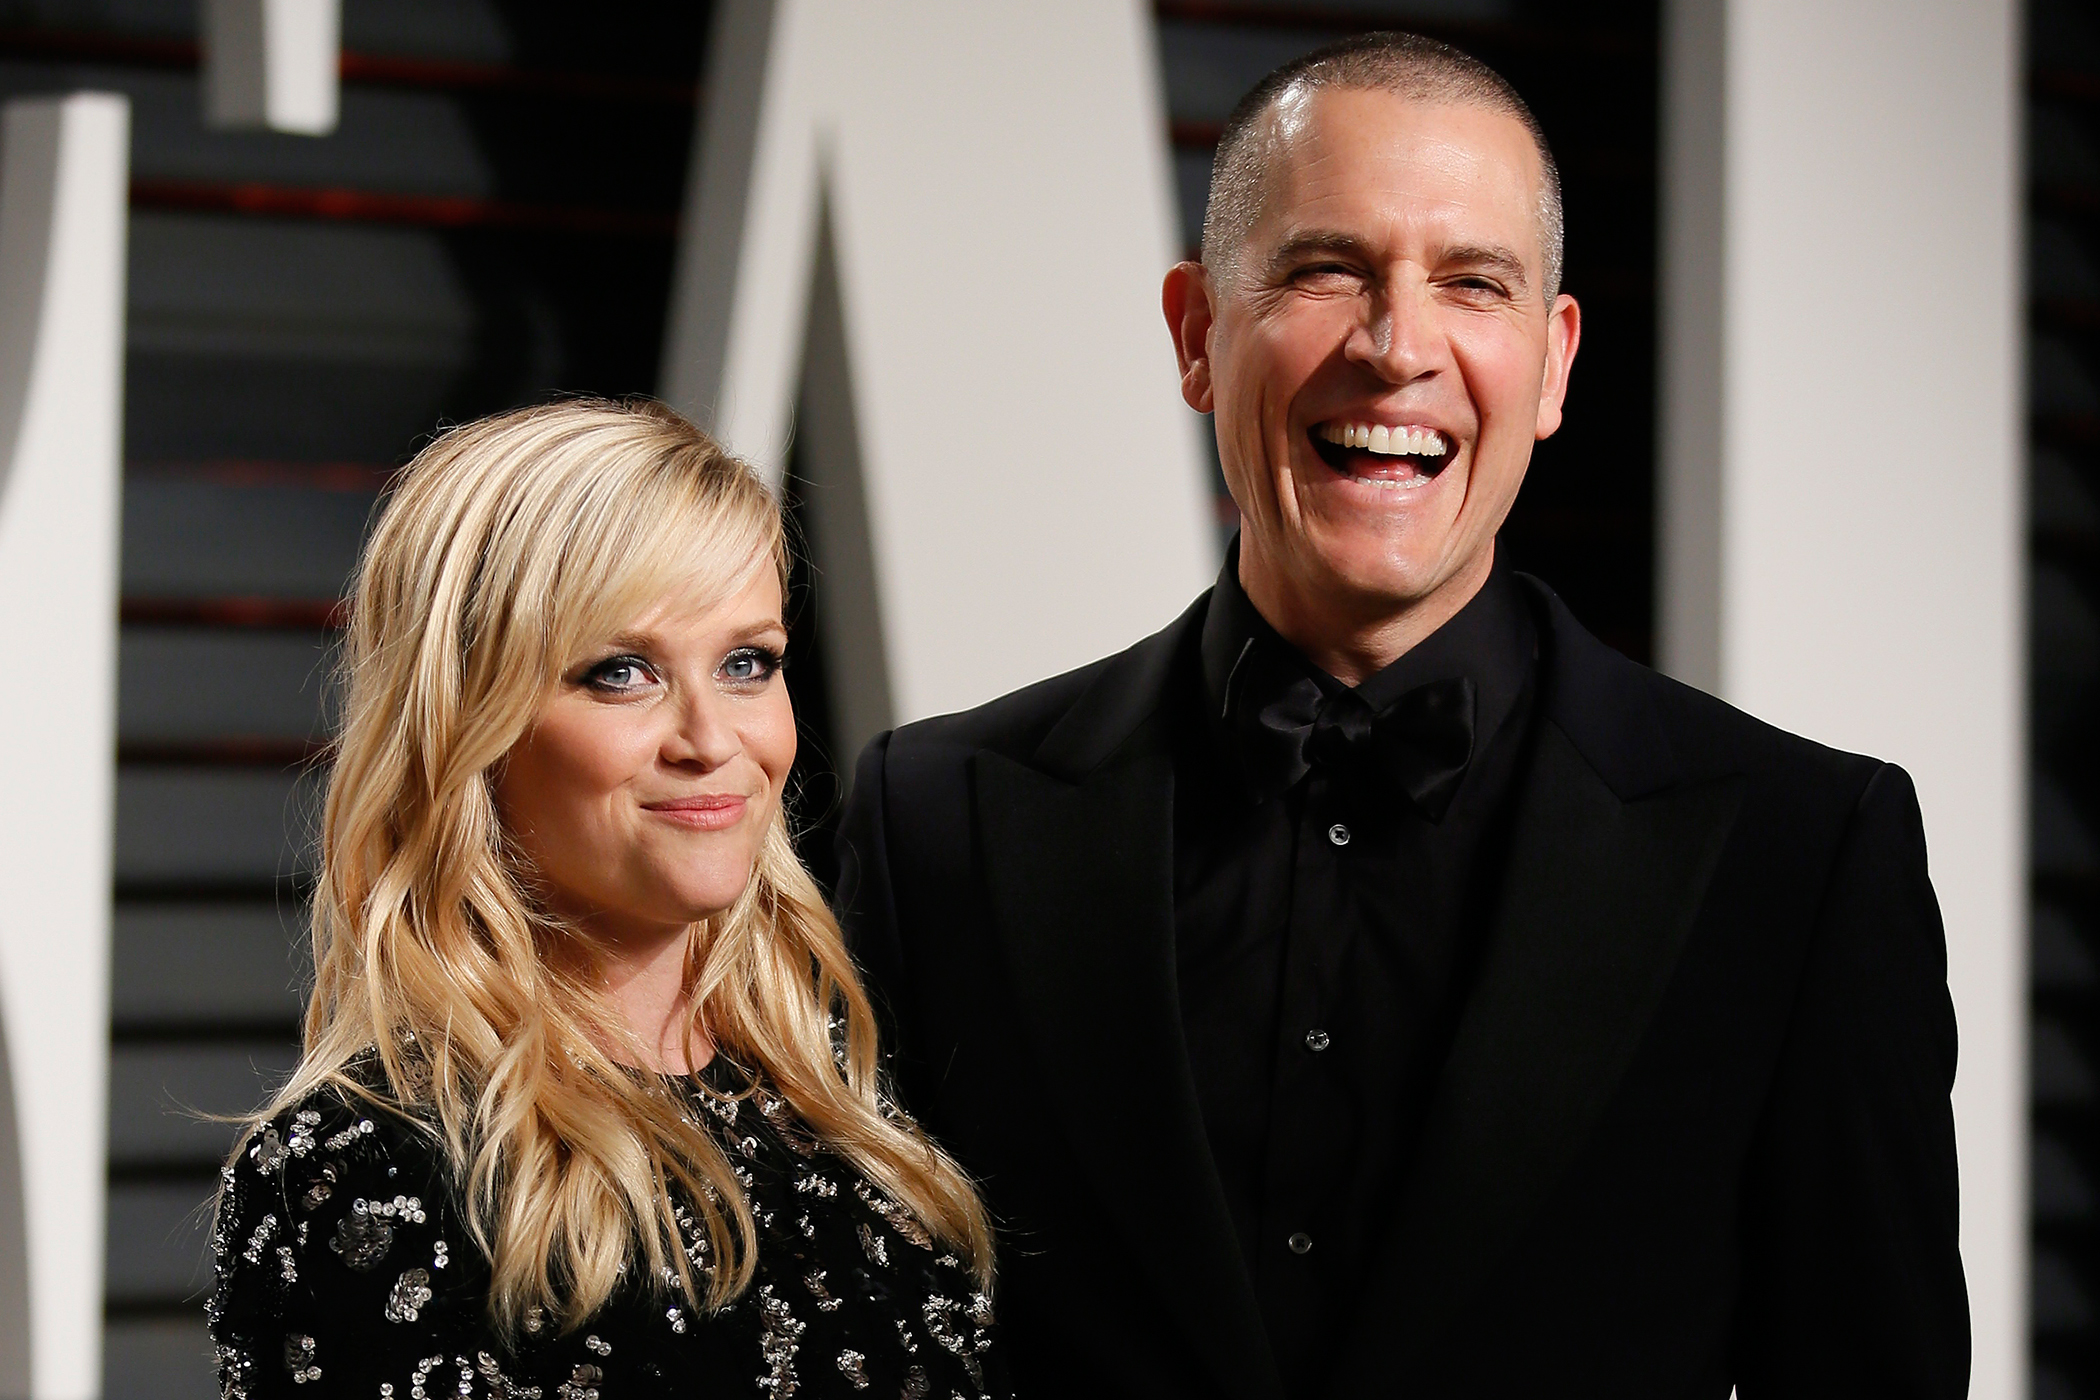 170706-richer-wives-reese-witherspoon-jim-toth